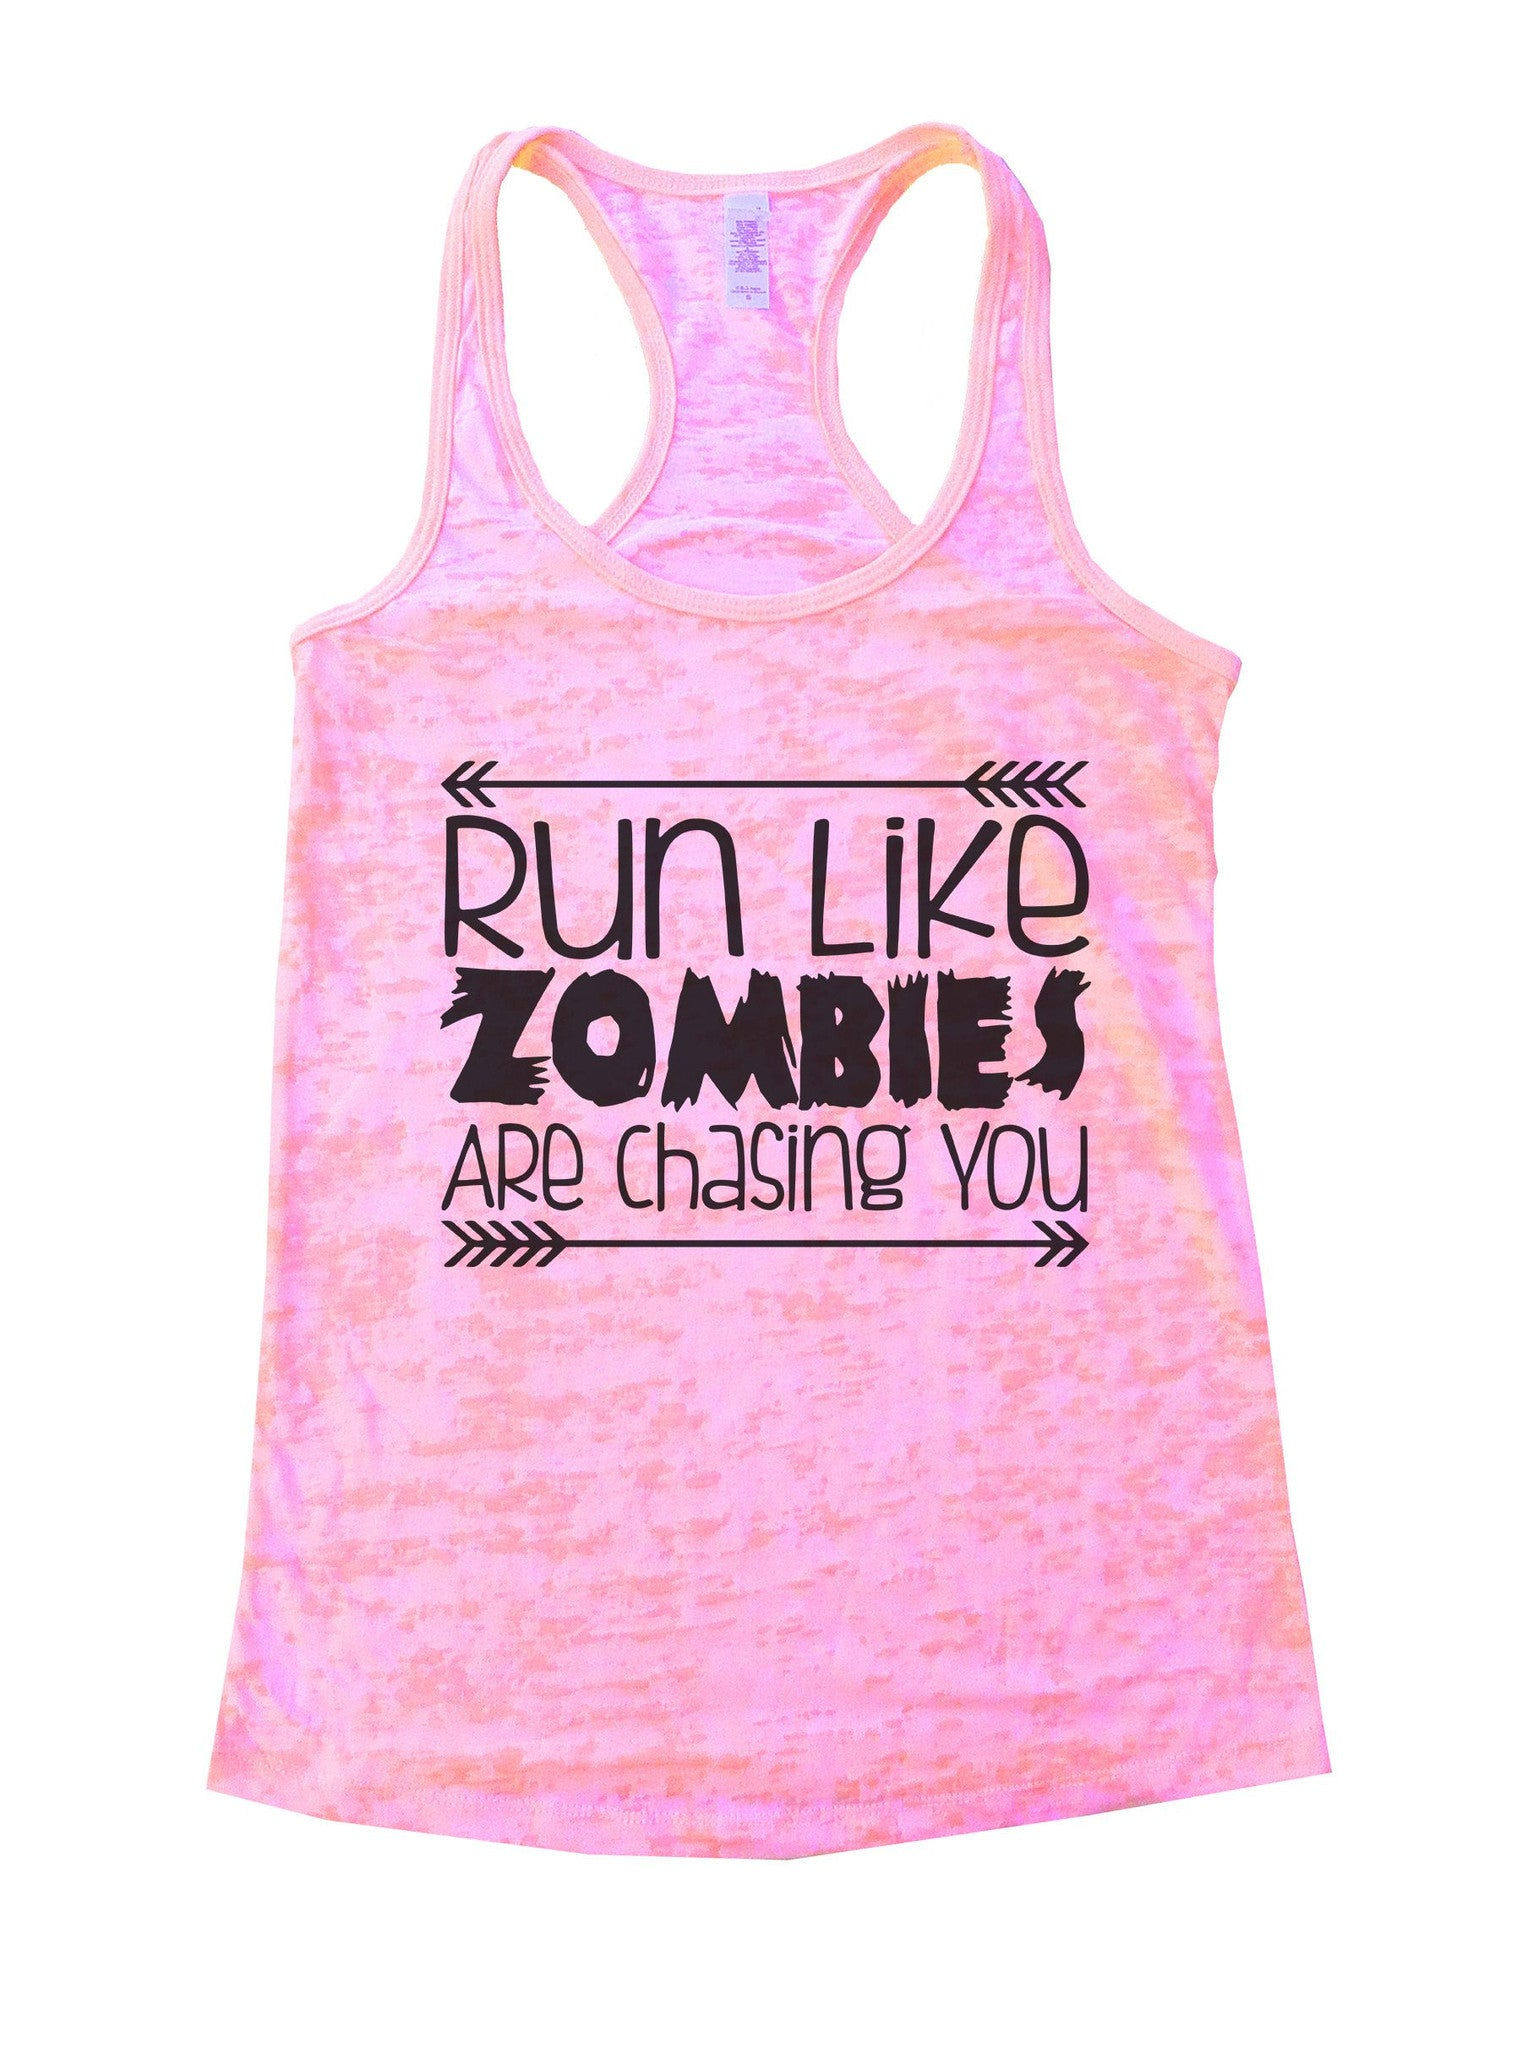 Run Like Zombies Are Chasing You Burnout Tank Top By BurnoutTankTops.com - 837 - Funny Shirts Tank Tops Burnouts and Triblends  - 1